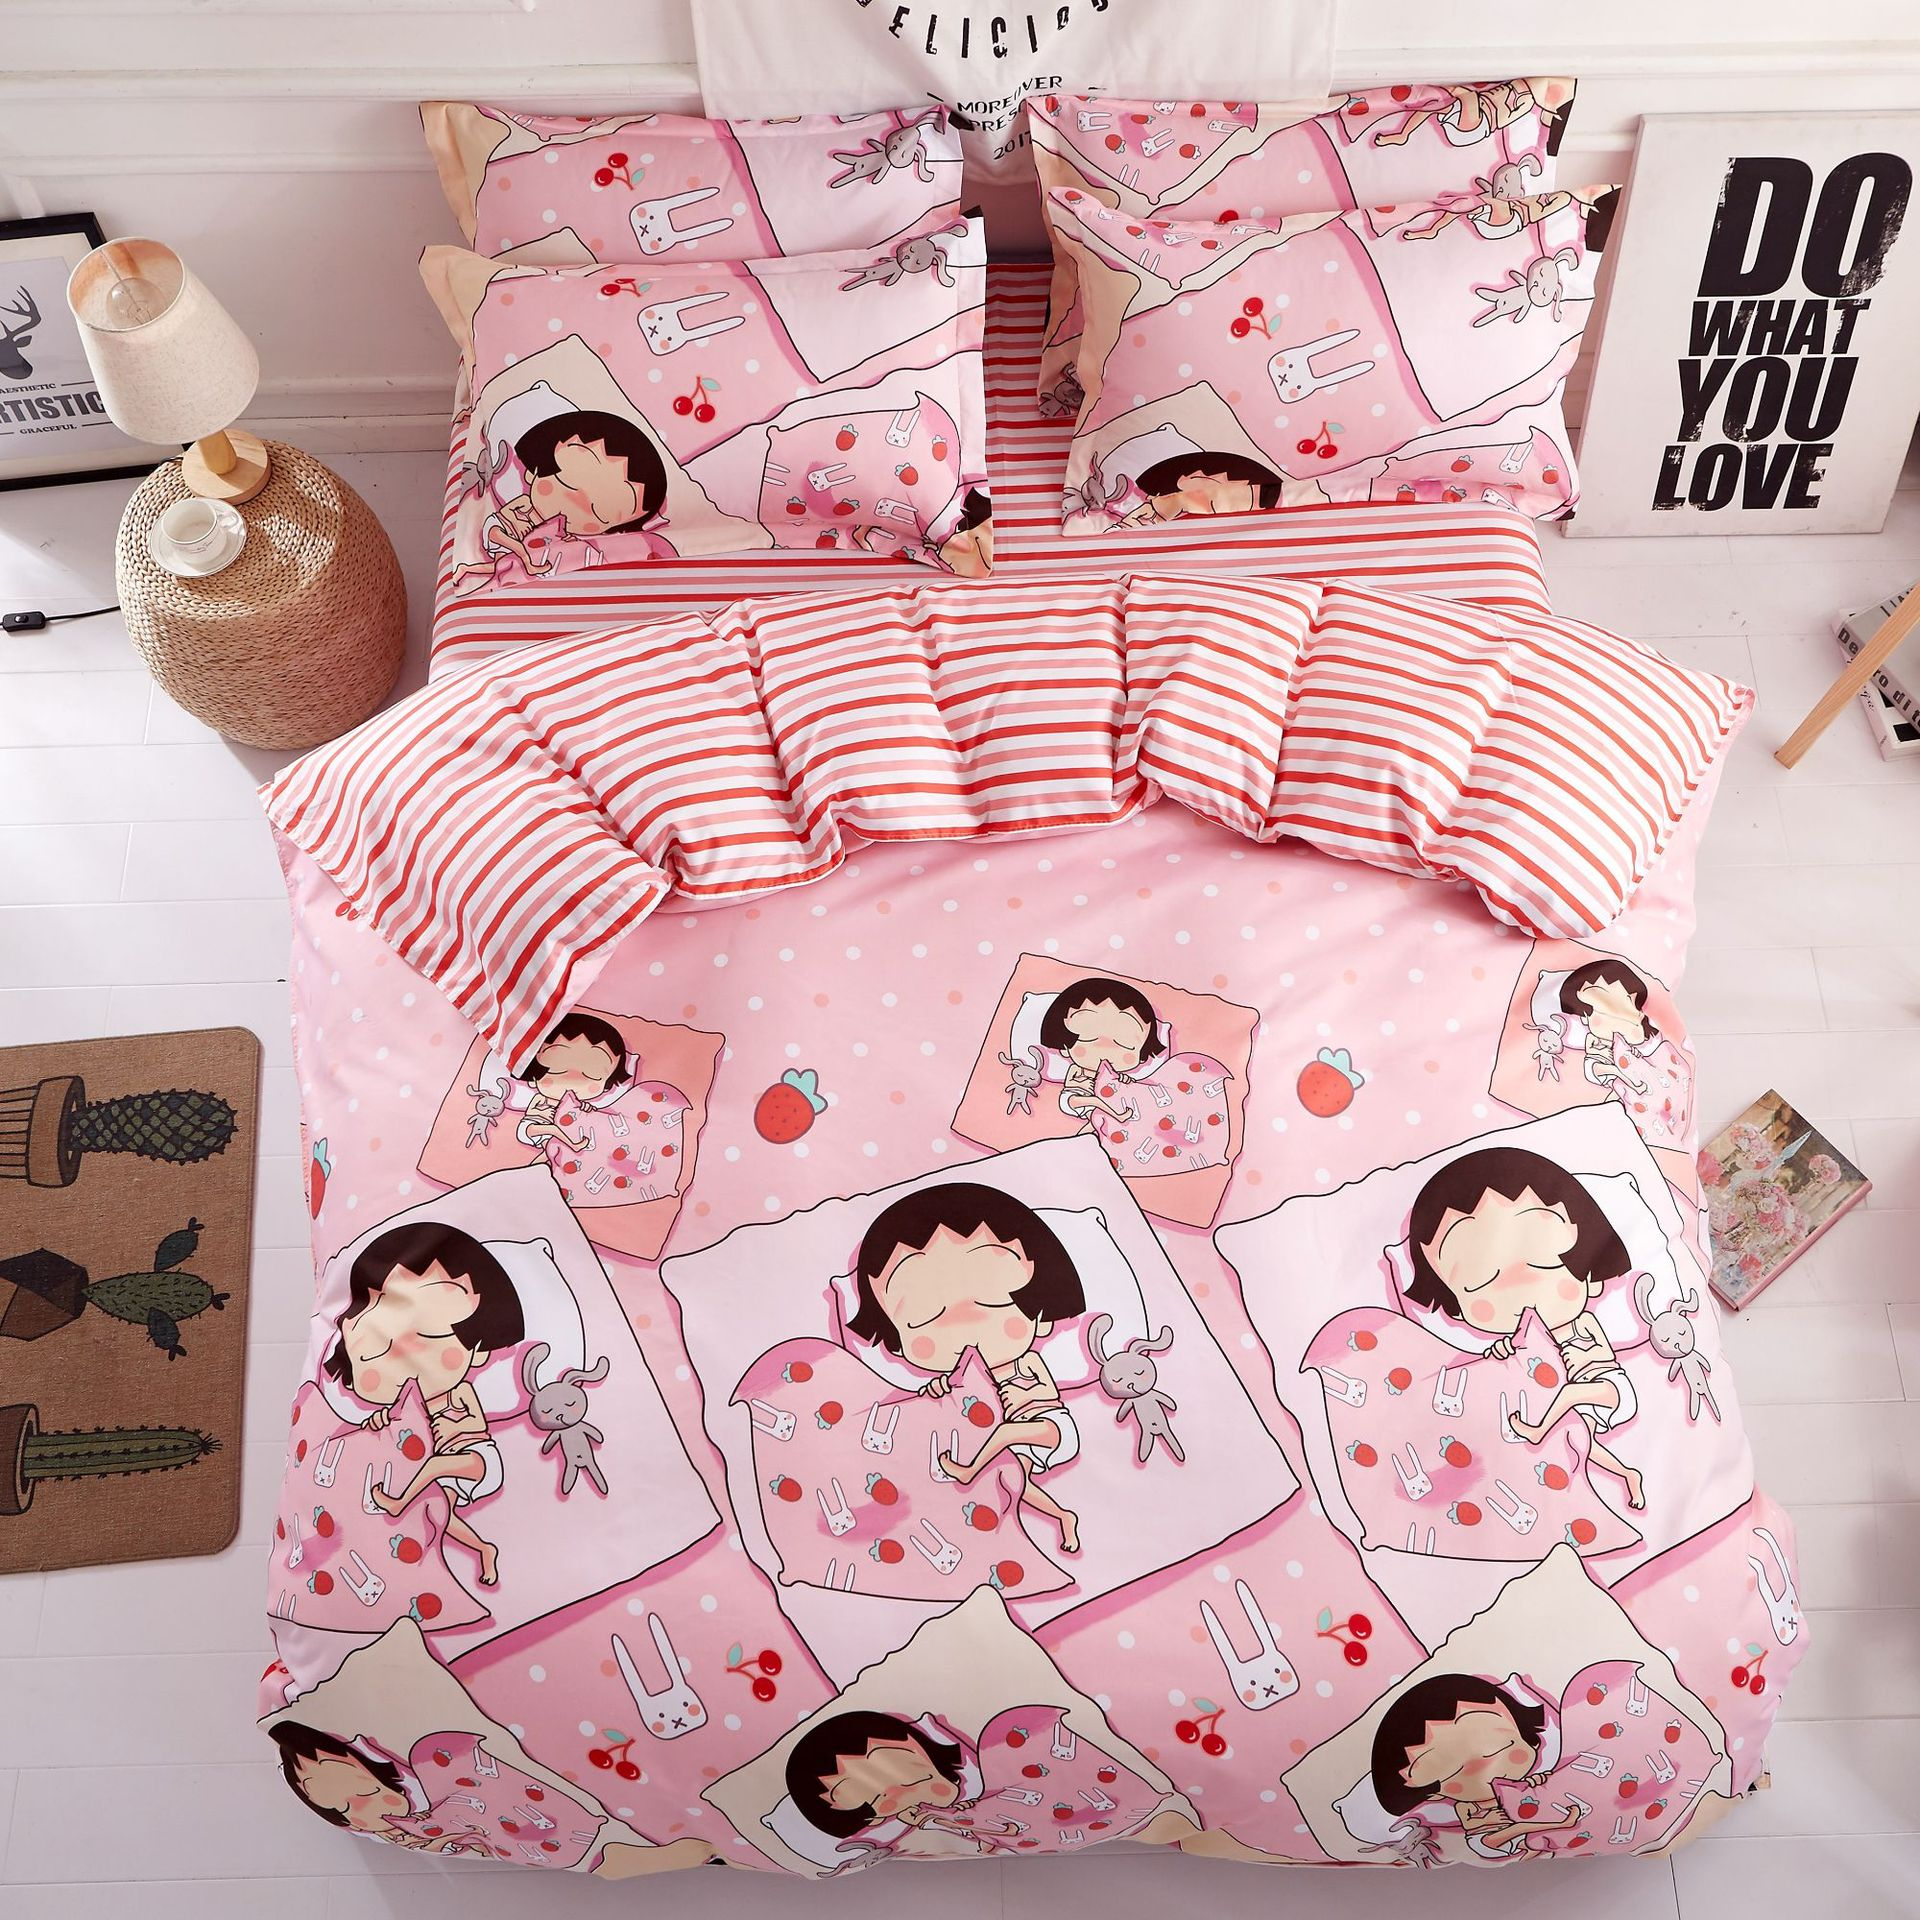 pillowcase King Queen Full Twin Bedding Set Bedding Set 3/4pcs Attractive And Durable Considerate Best Luxury Pink Cute Cartoon Duvet Cover Flat Bed Sheets Bedding